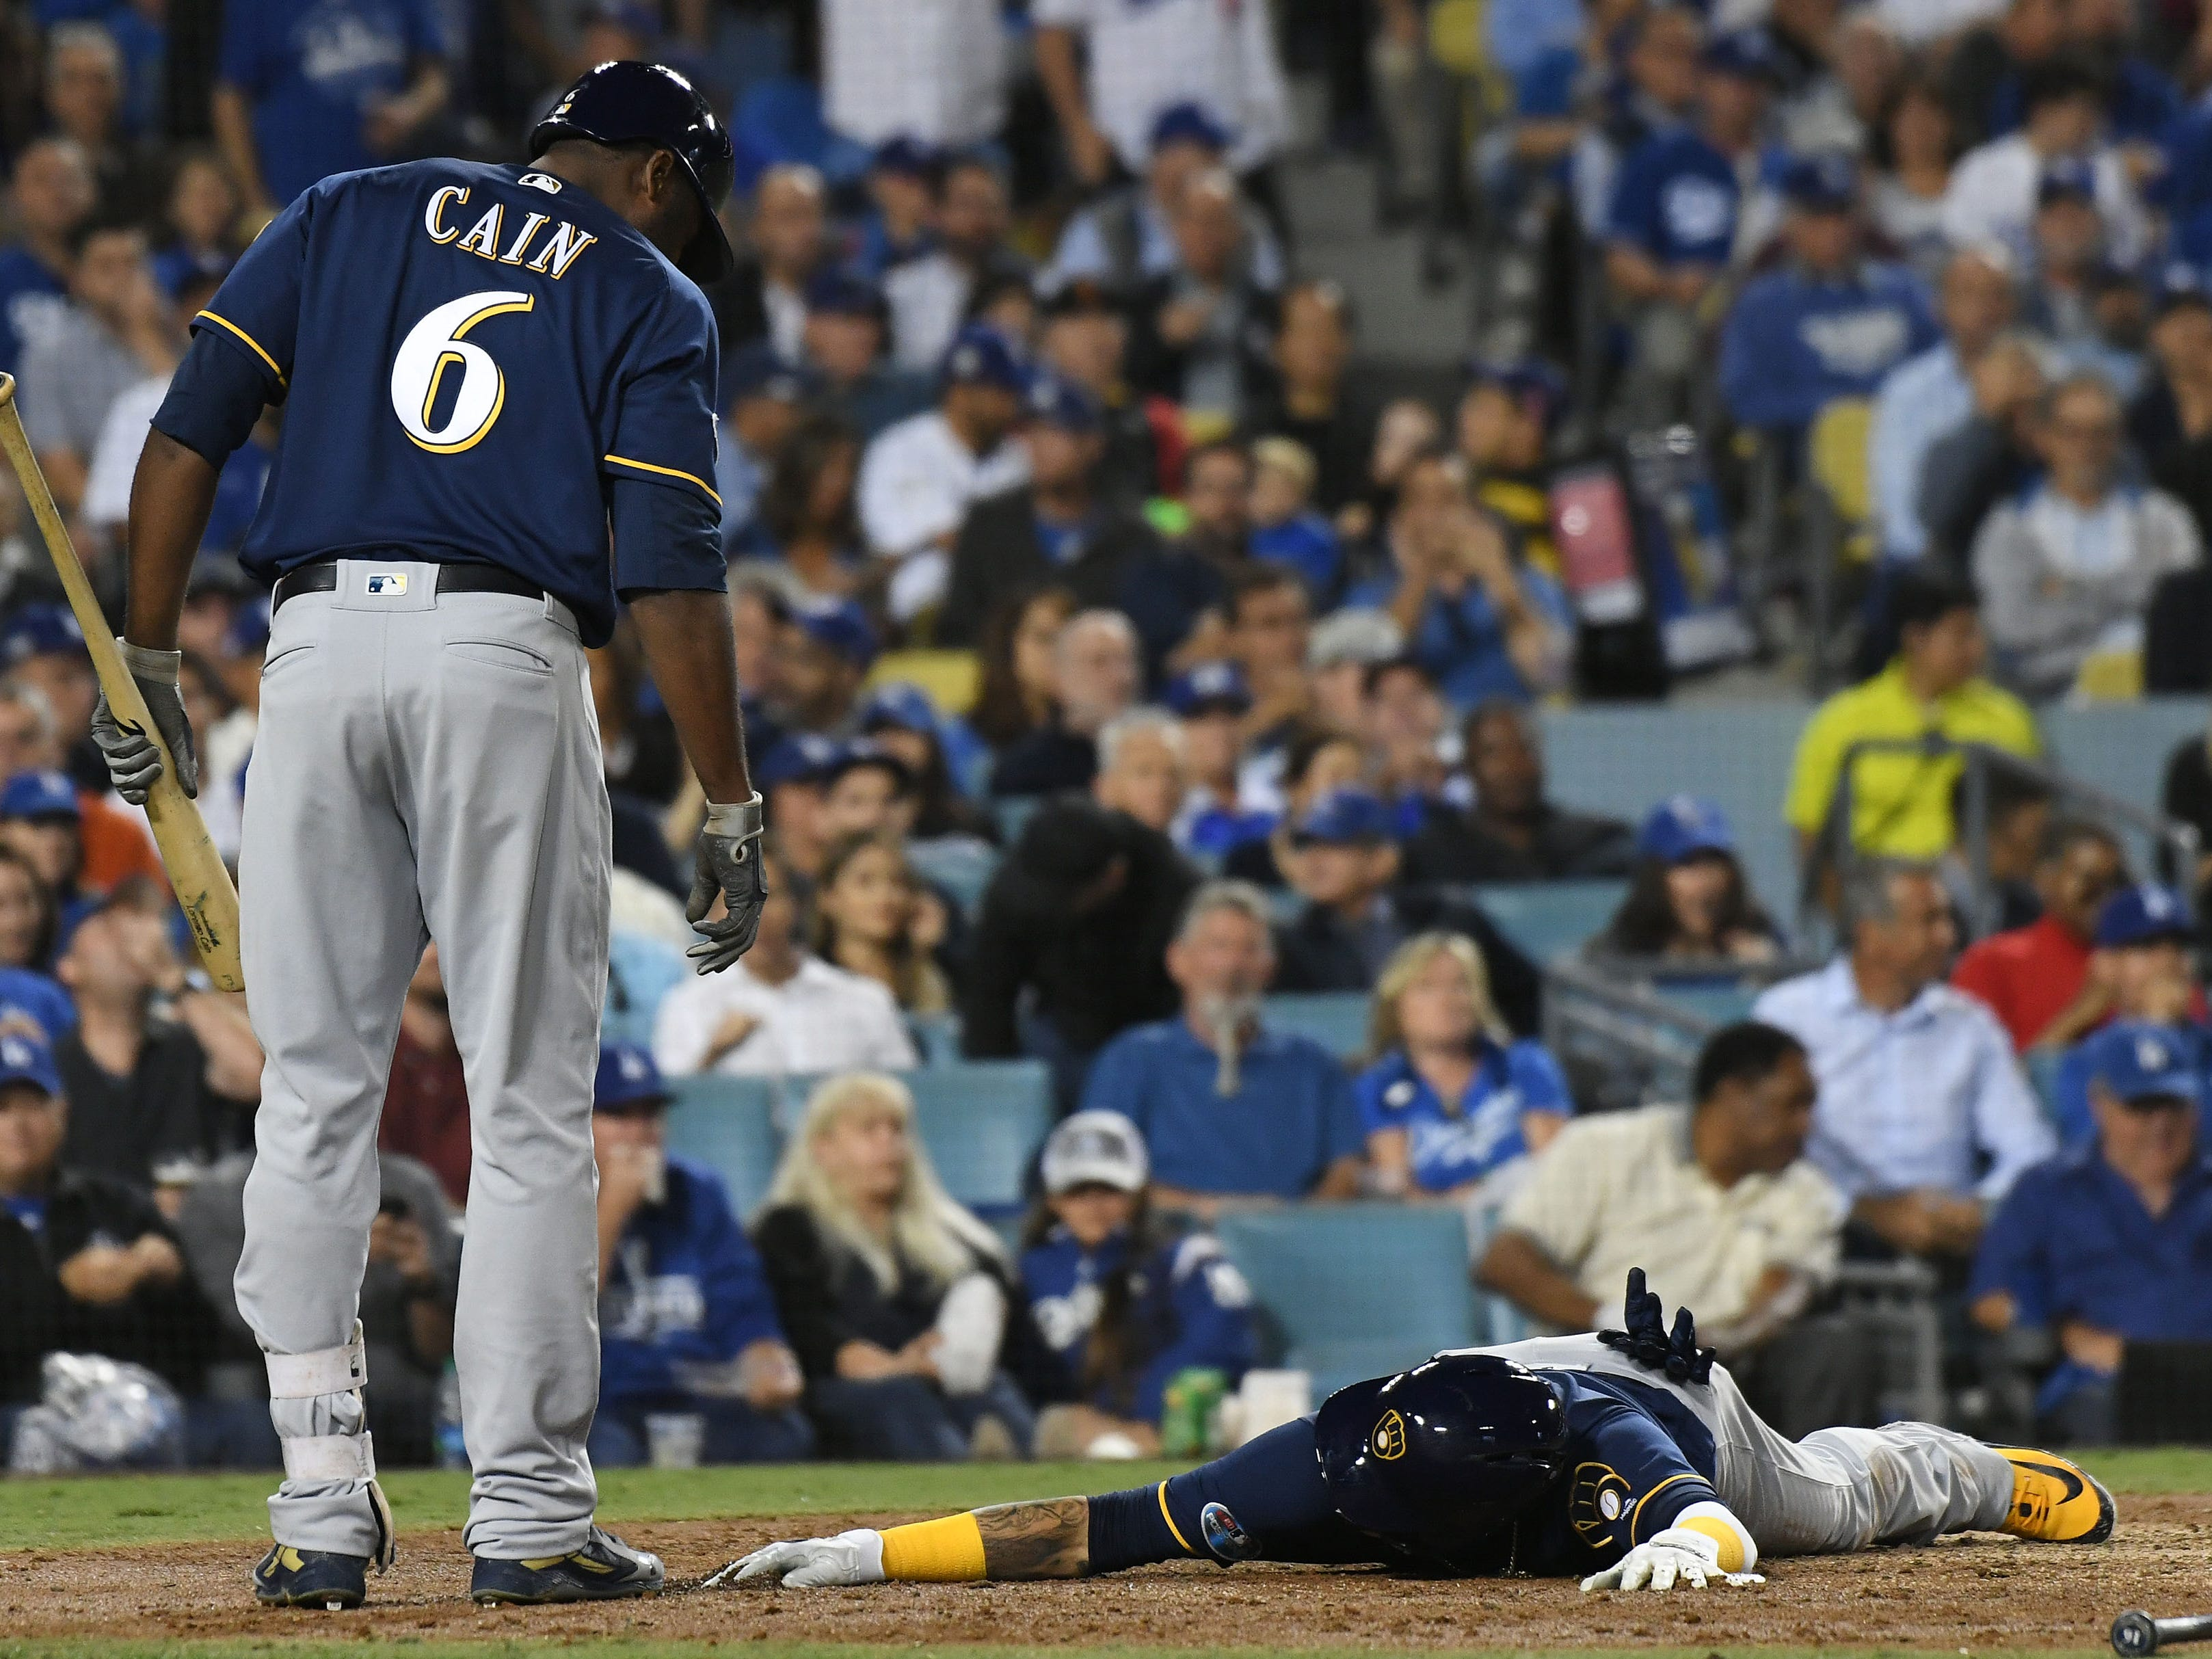 NLCS Game 4: Brewers shortstop Orlando Arcia is exhausted after scoring from first on a double by right fielder Domingo Santana in the fifth inning.